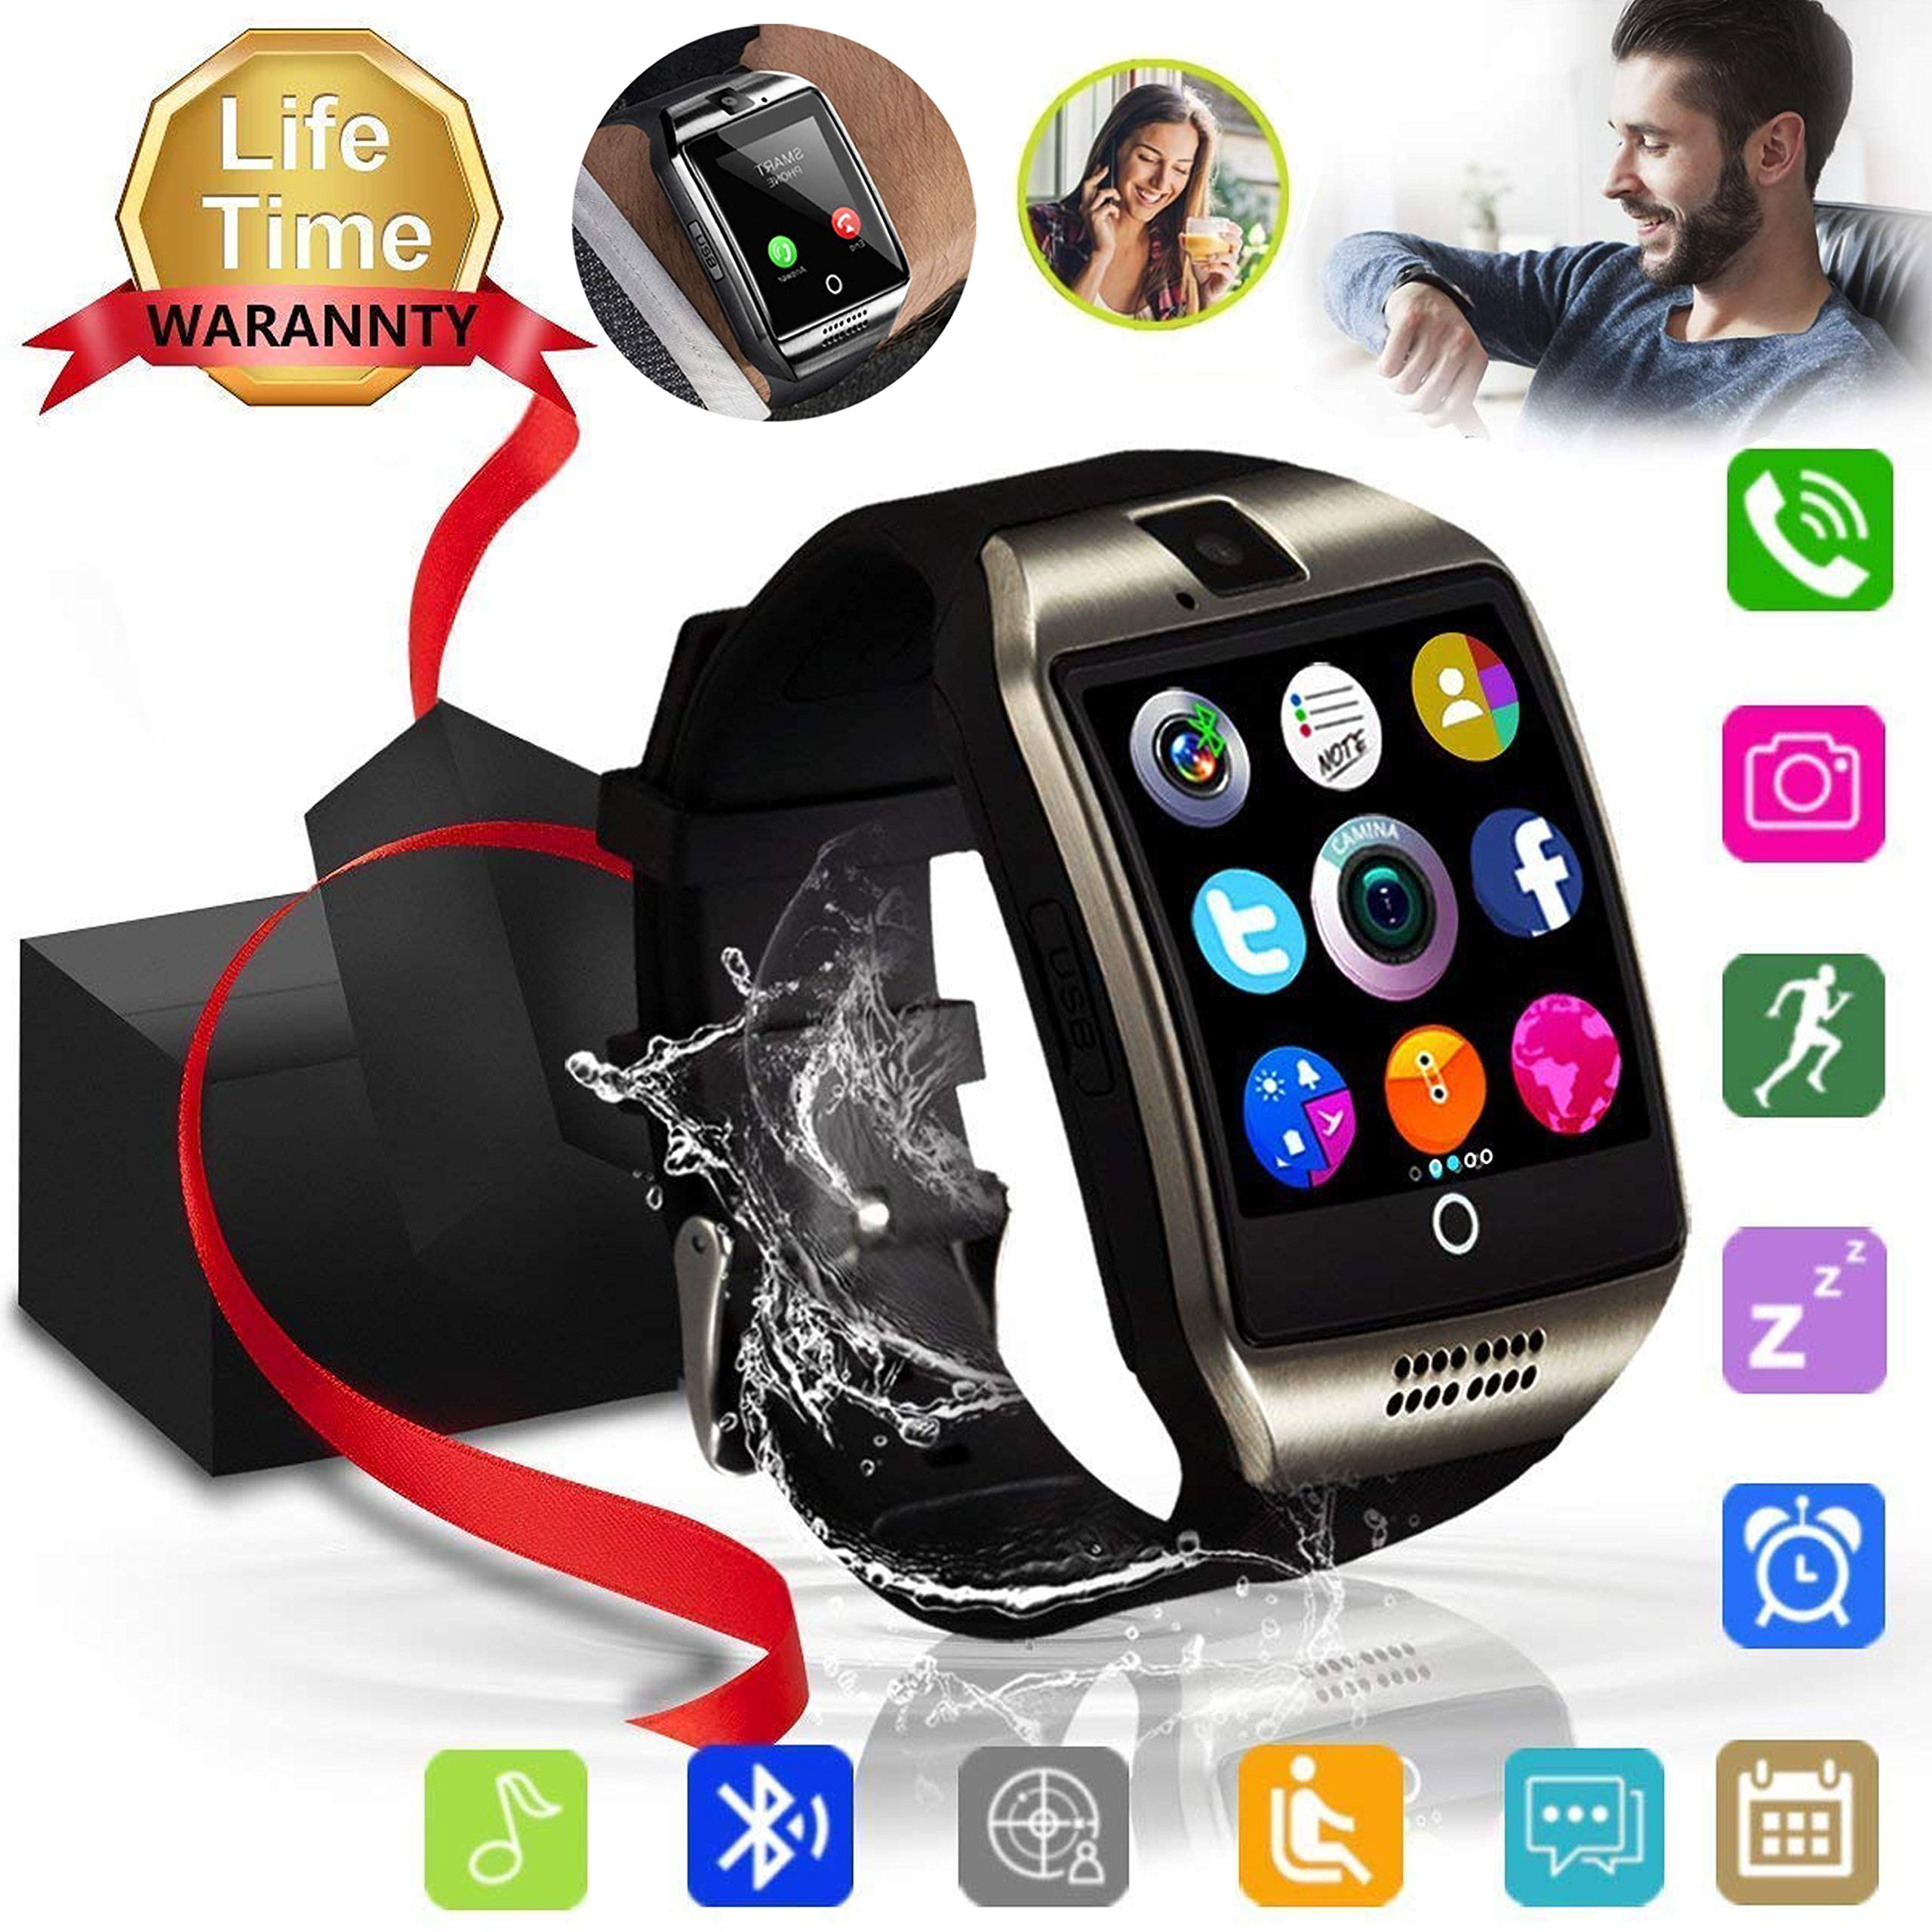 Bluetooth Smart Watch, XIAOGAJI Touch Screen Sport Wrist Watch Smartwatch Phone Fitness Tracker with Camera Pedometer SIM TF Card Slot for iPhone iOS Samsung Android for Men Women Kids, Silver